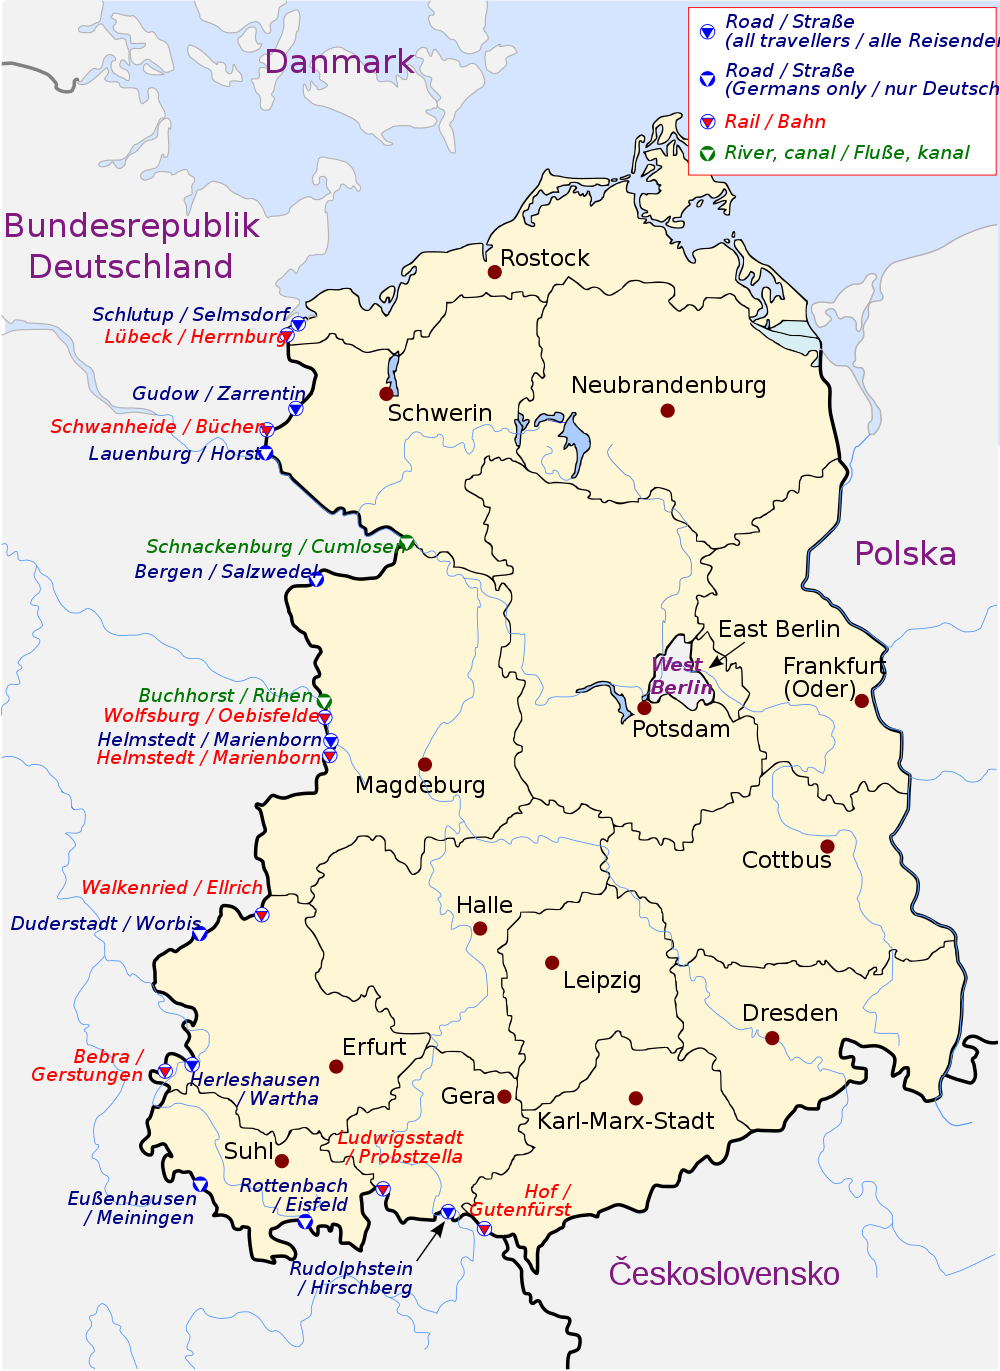 Crossing the inner German border during the Cold War - Wikipedia on map of europe cold war, nato cold war, berlin wall map cold war, map of berlin world war 2, map of warsaw pact cold war,